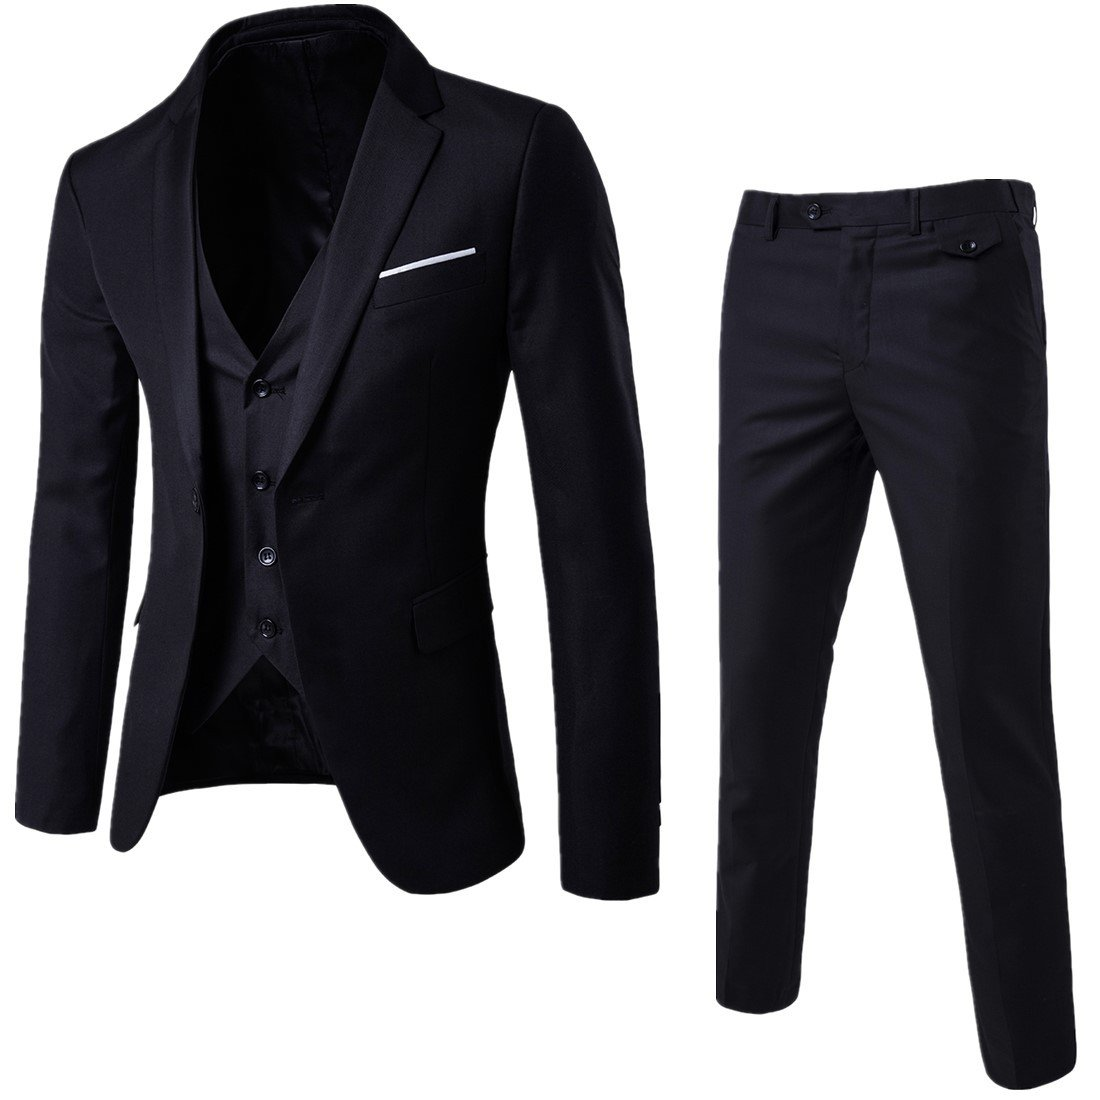 8ffd07bd4f6 MAGE MALE Men s 3 Pieces Suit Elegant Solid One Button Slim Fit Single  Breasted Party Blazer Vest Pants Set at Amazon Men s Clothing store